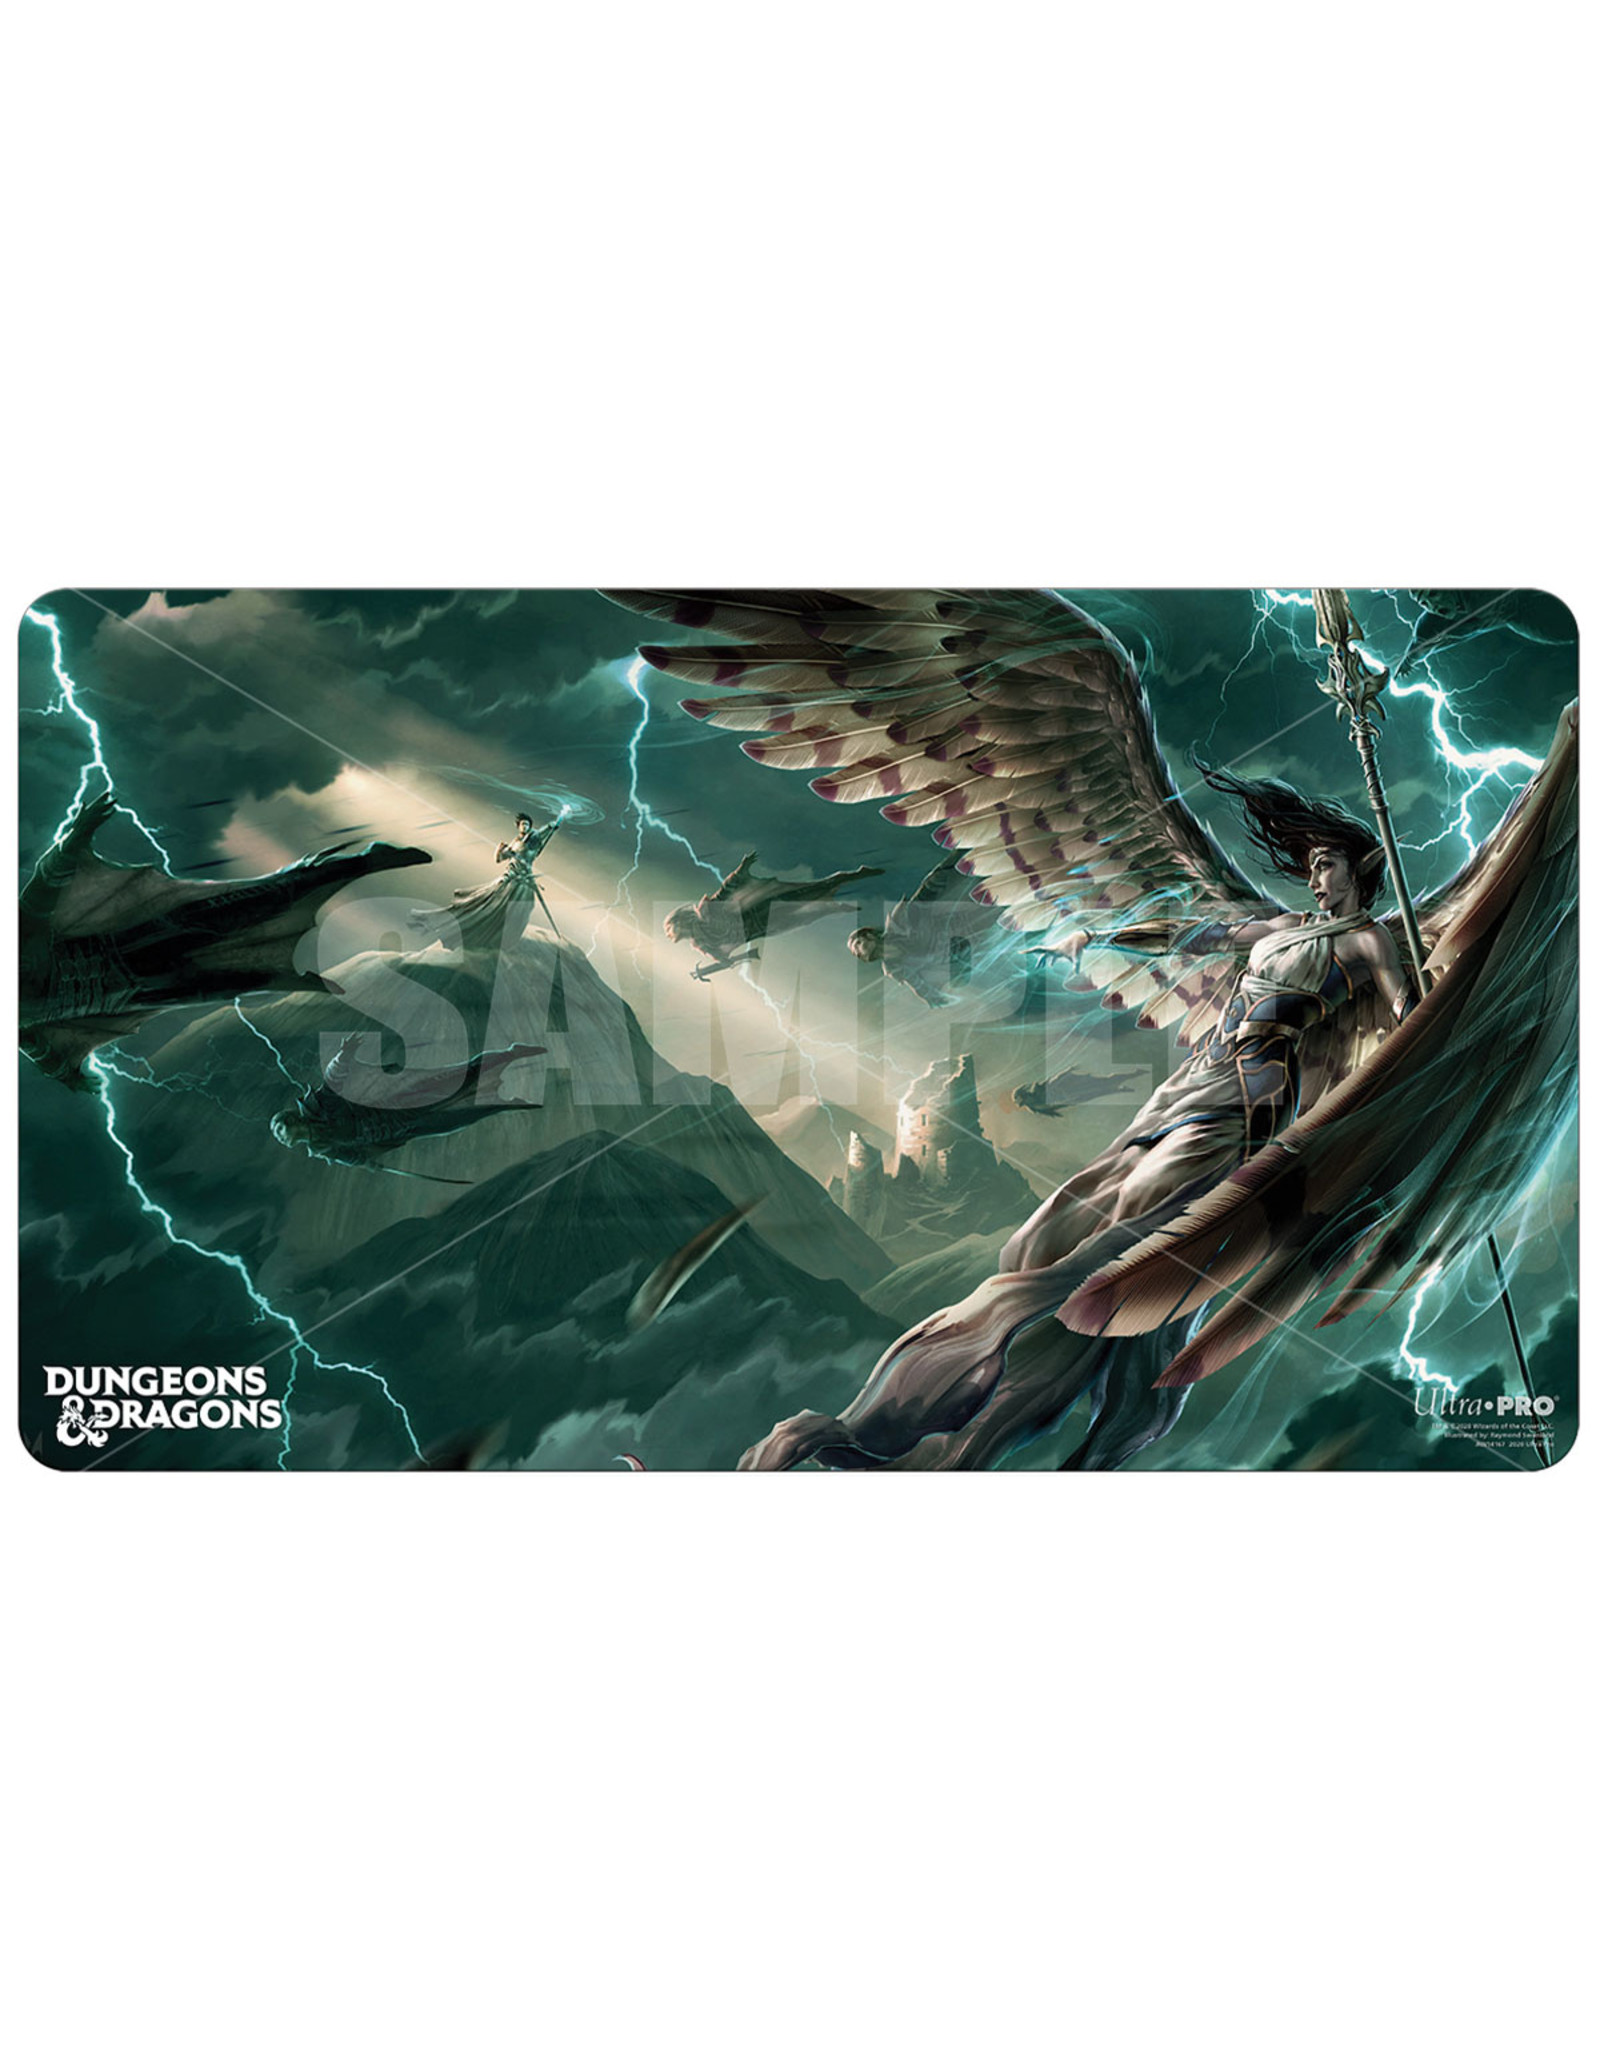 Ultra Pro Dungeons & Dragons: Cover Series Playmat - Princes of the Apocalypse